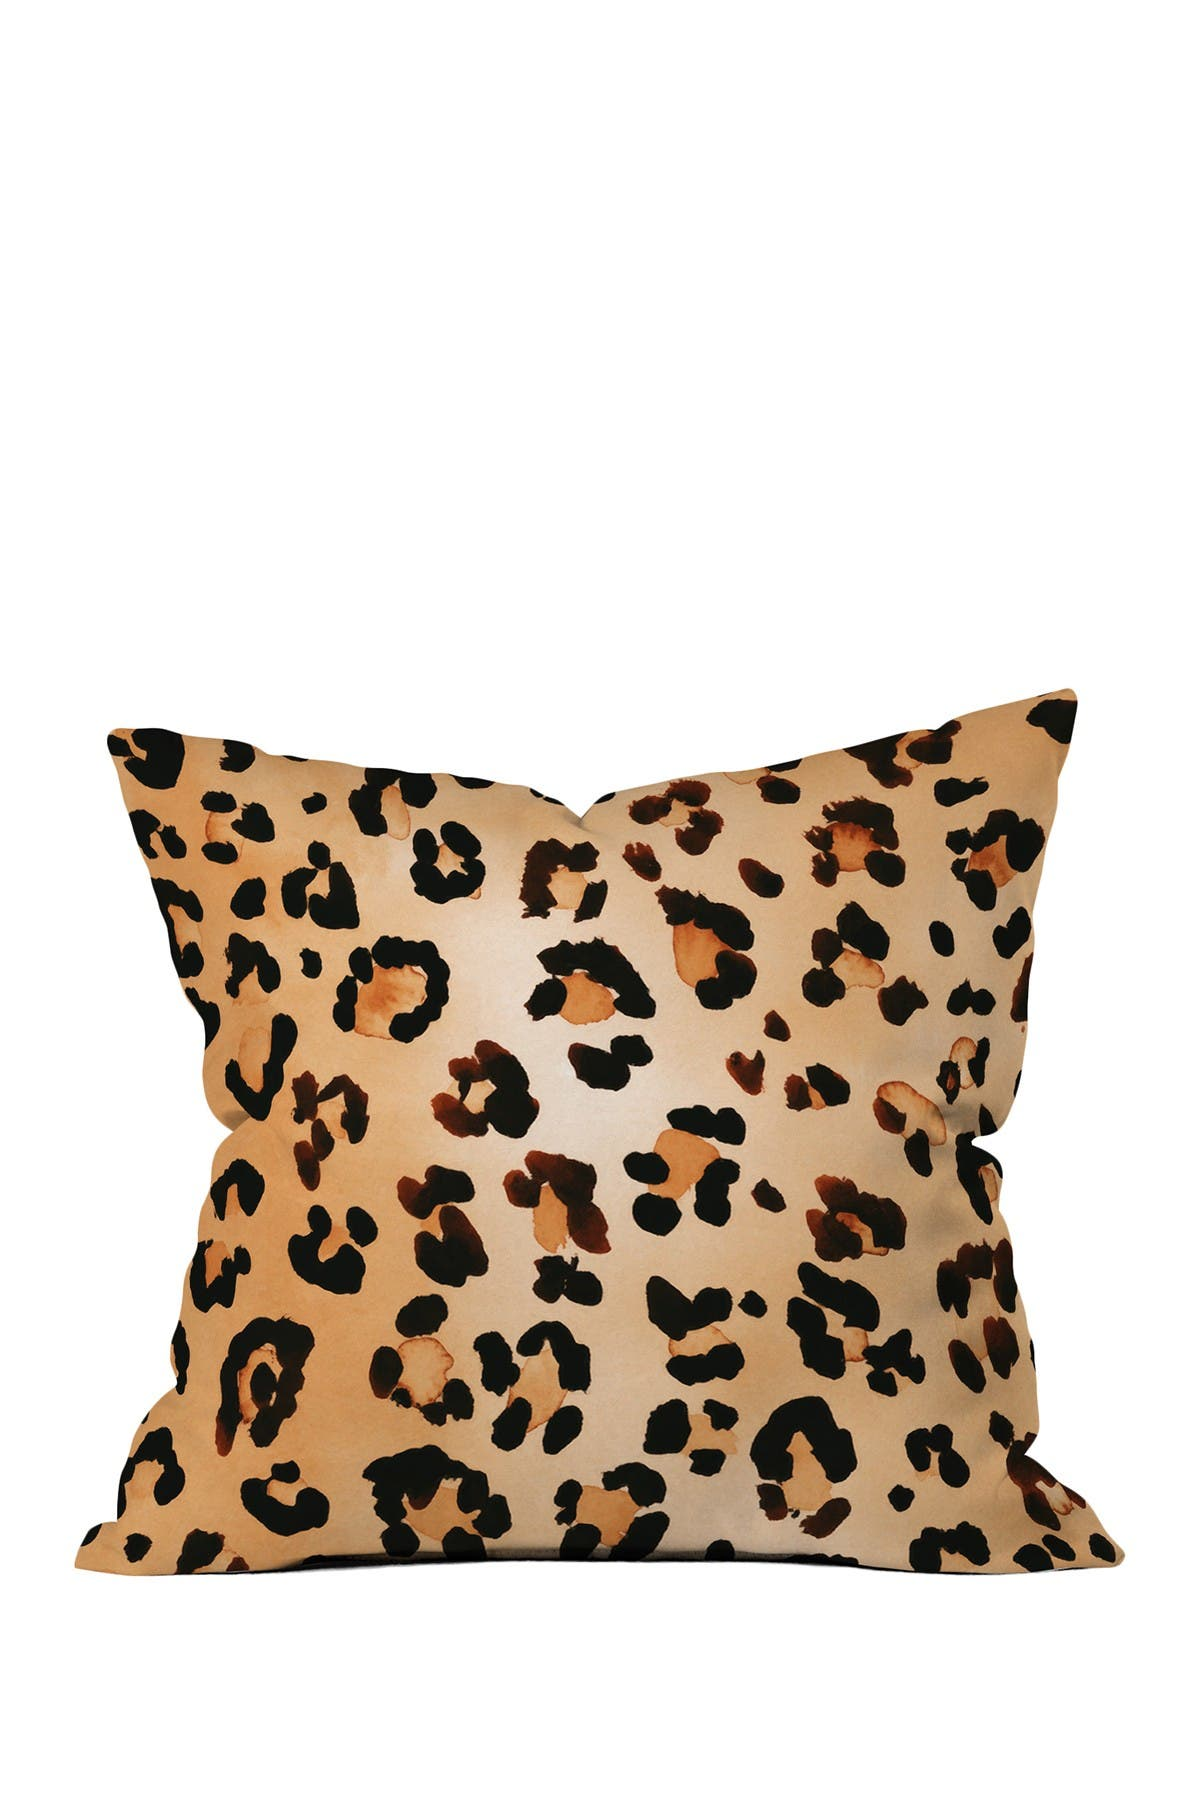 Deny Designs Amy Sia Animal Leopard Brown Square Throw Pillow Nordstrom Rack